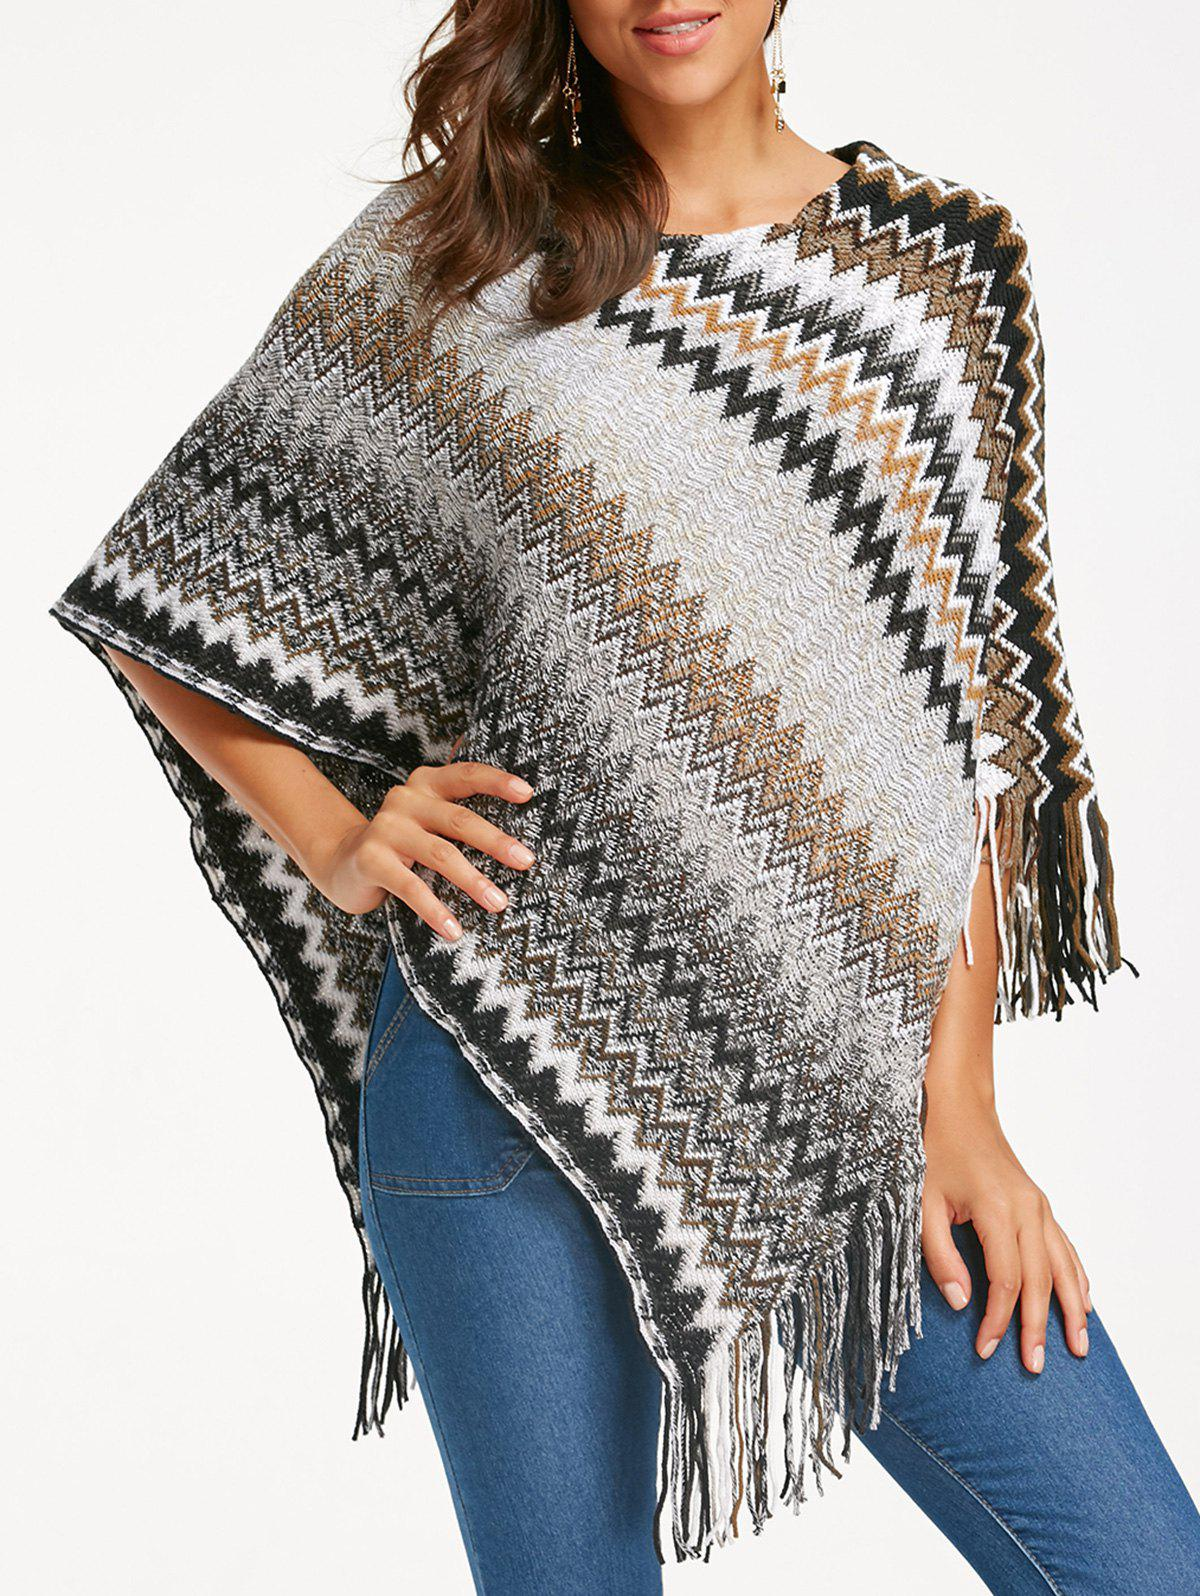 Zigzag Knitted Irregular Fringed Poncho ribbed knitted poncho pink